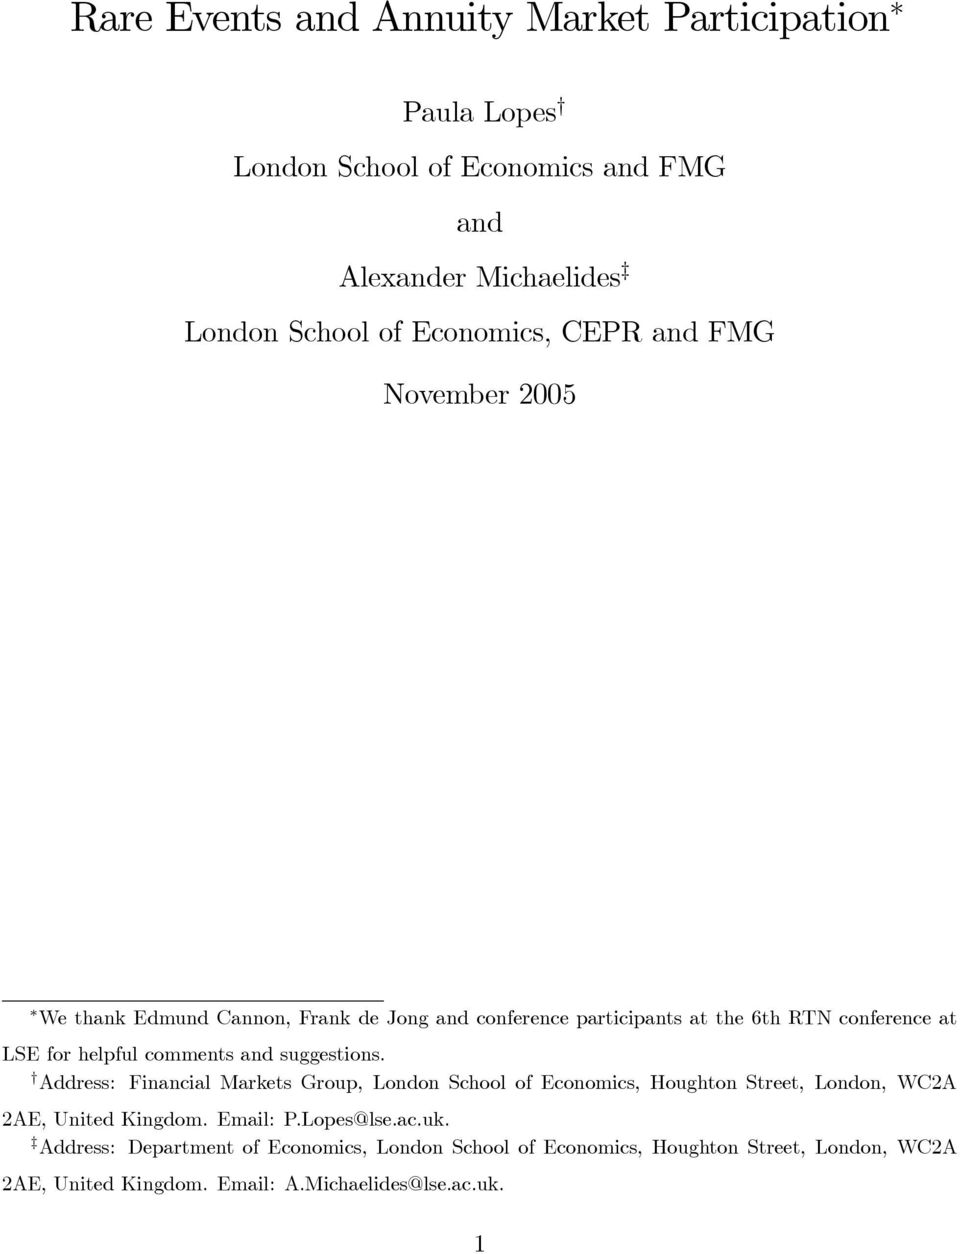 and suggestions. Address: Financial Markets Group, London School of Economics, Houghton Street, London, WC2A 2AE, United Kingdom. Email: P.Lopes@lse.